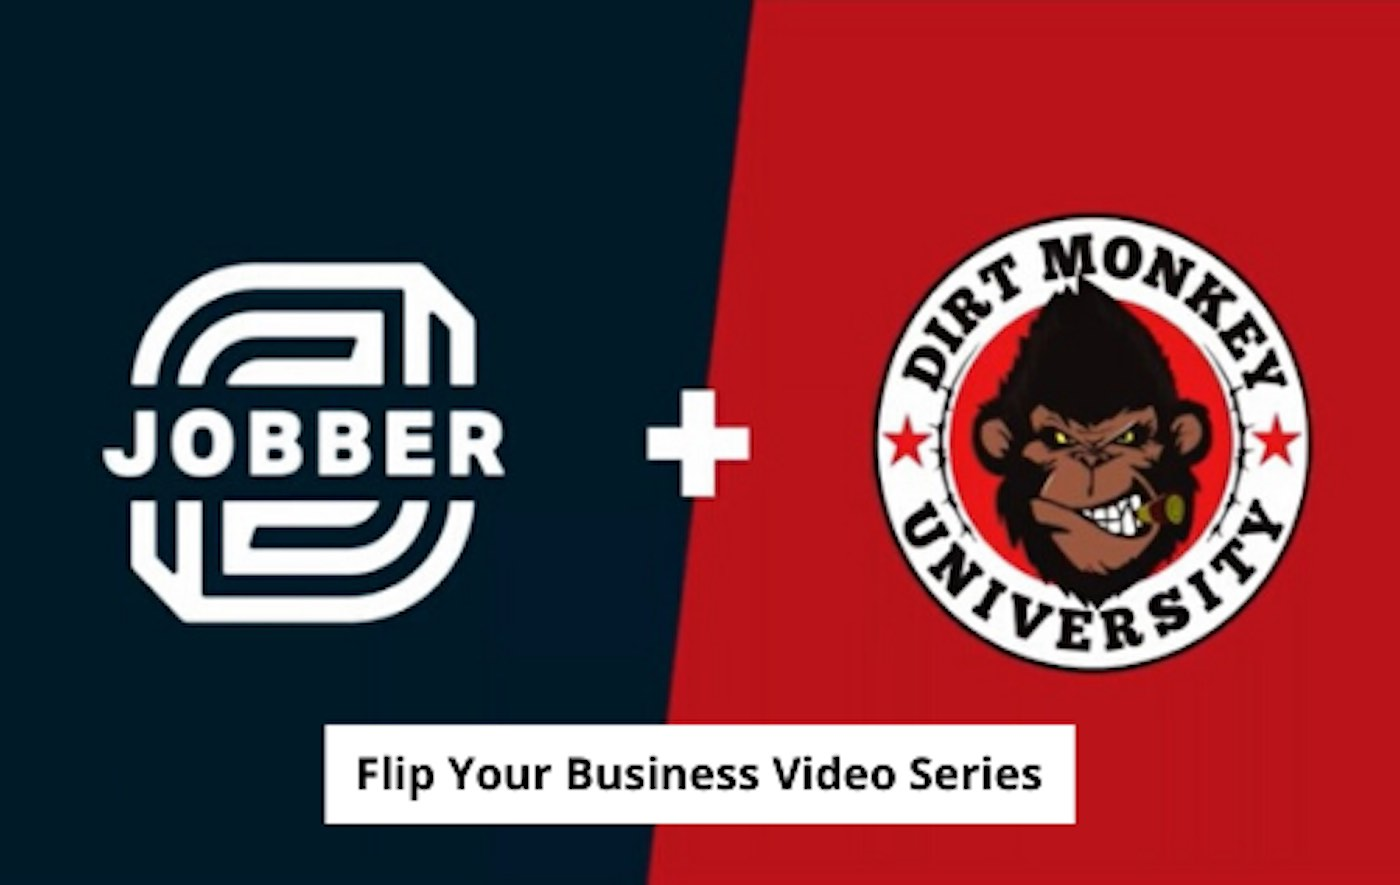 Flip-Your-Business-Video-Series